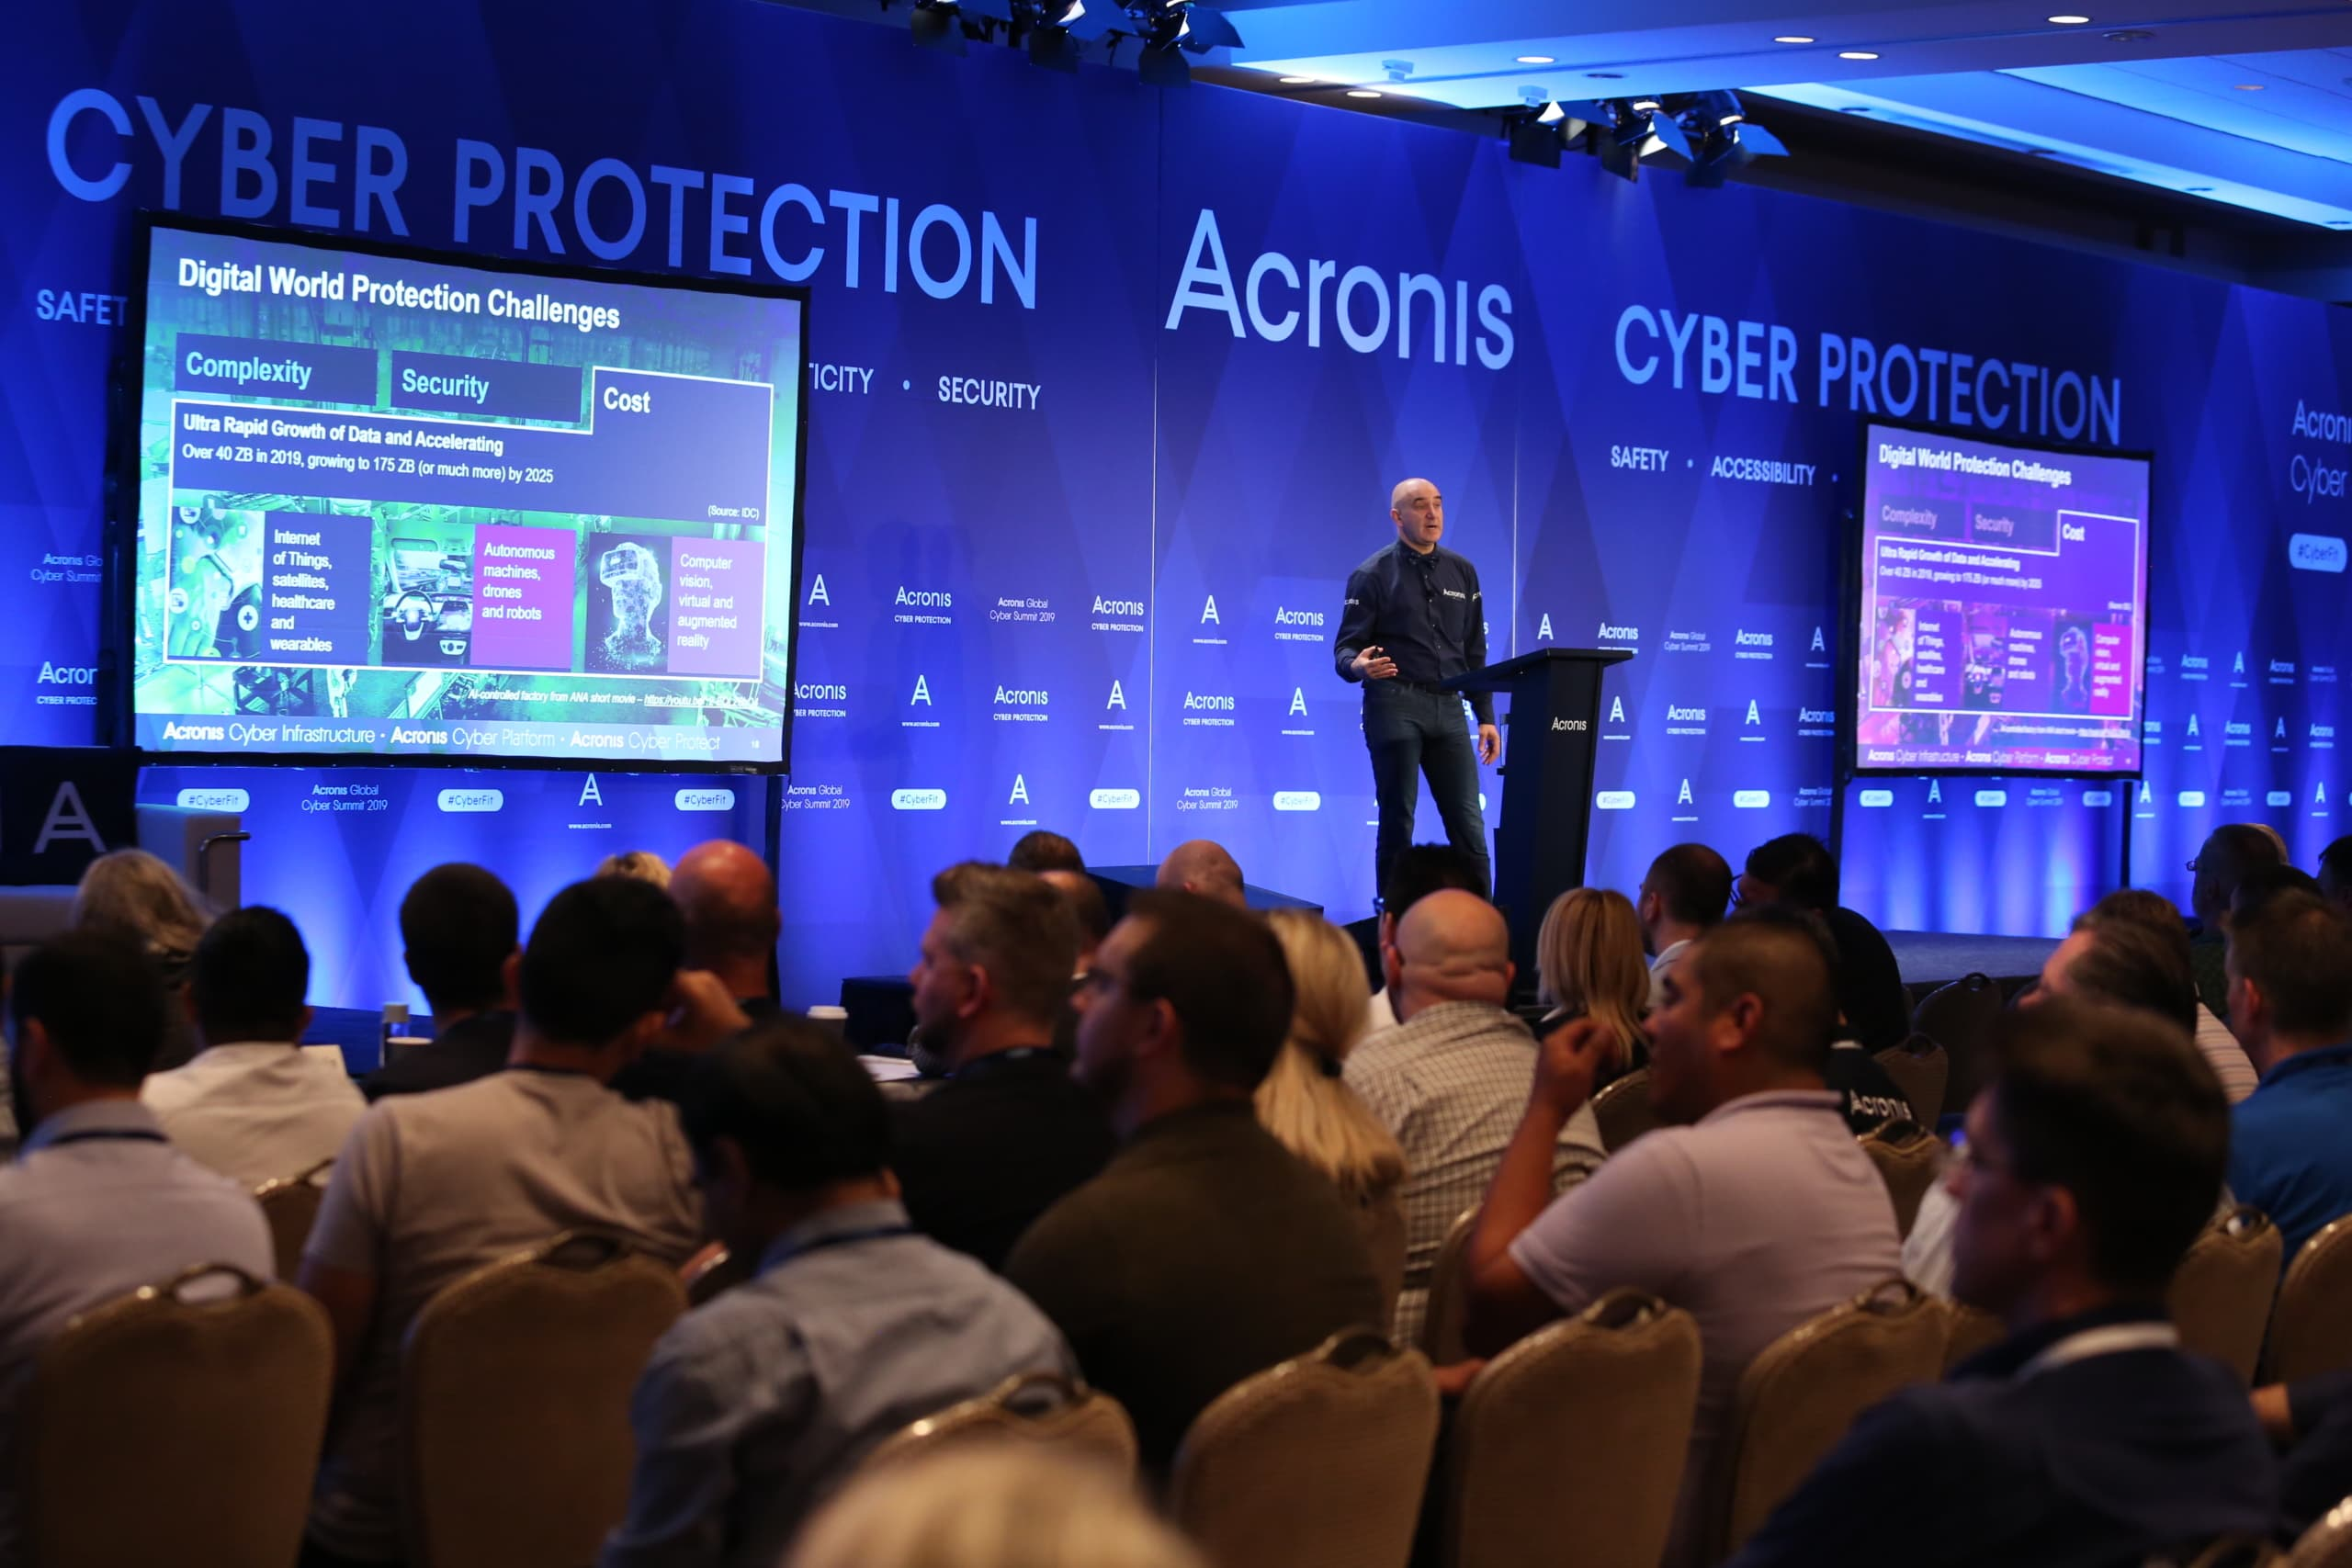 #AcronisCyberSummit workshops and sessions